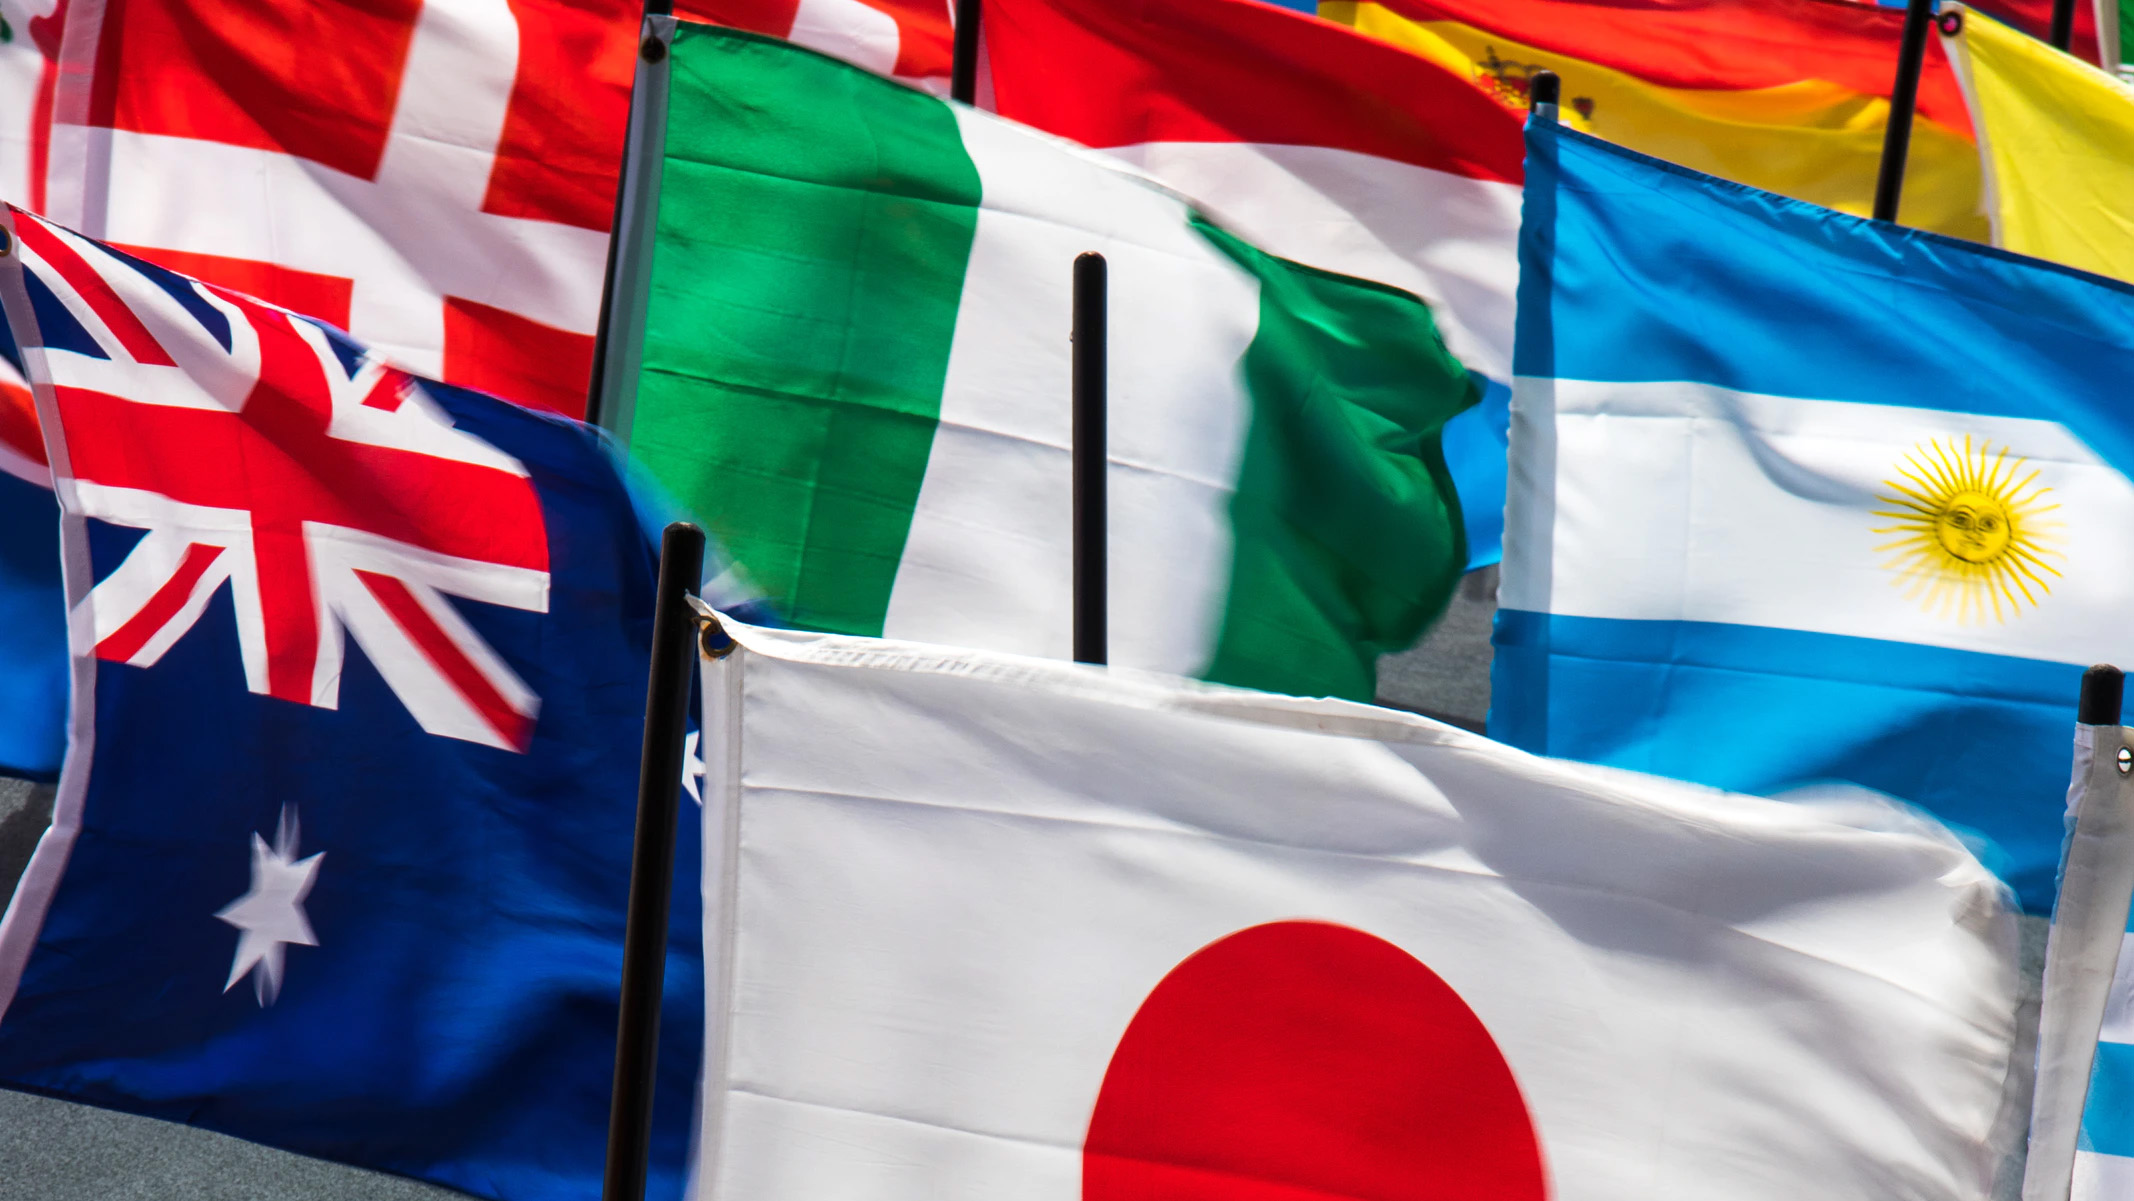 Flags of various nations.